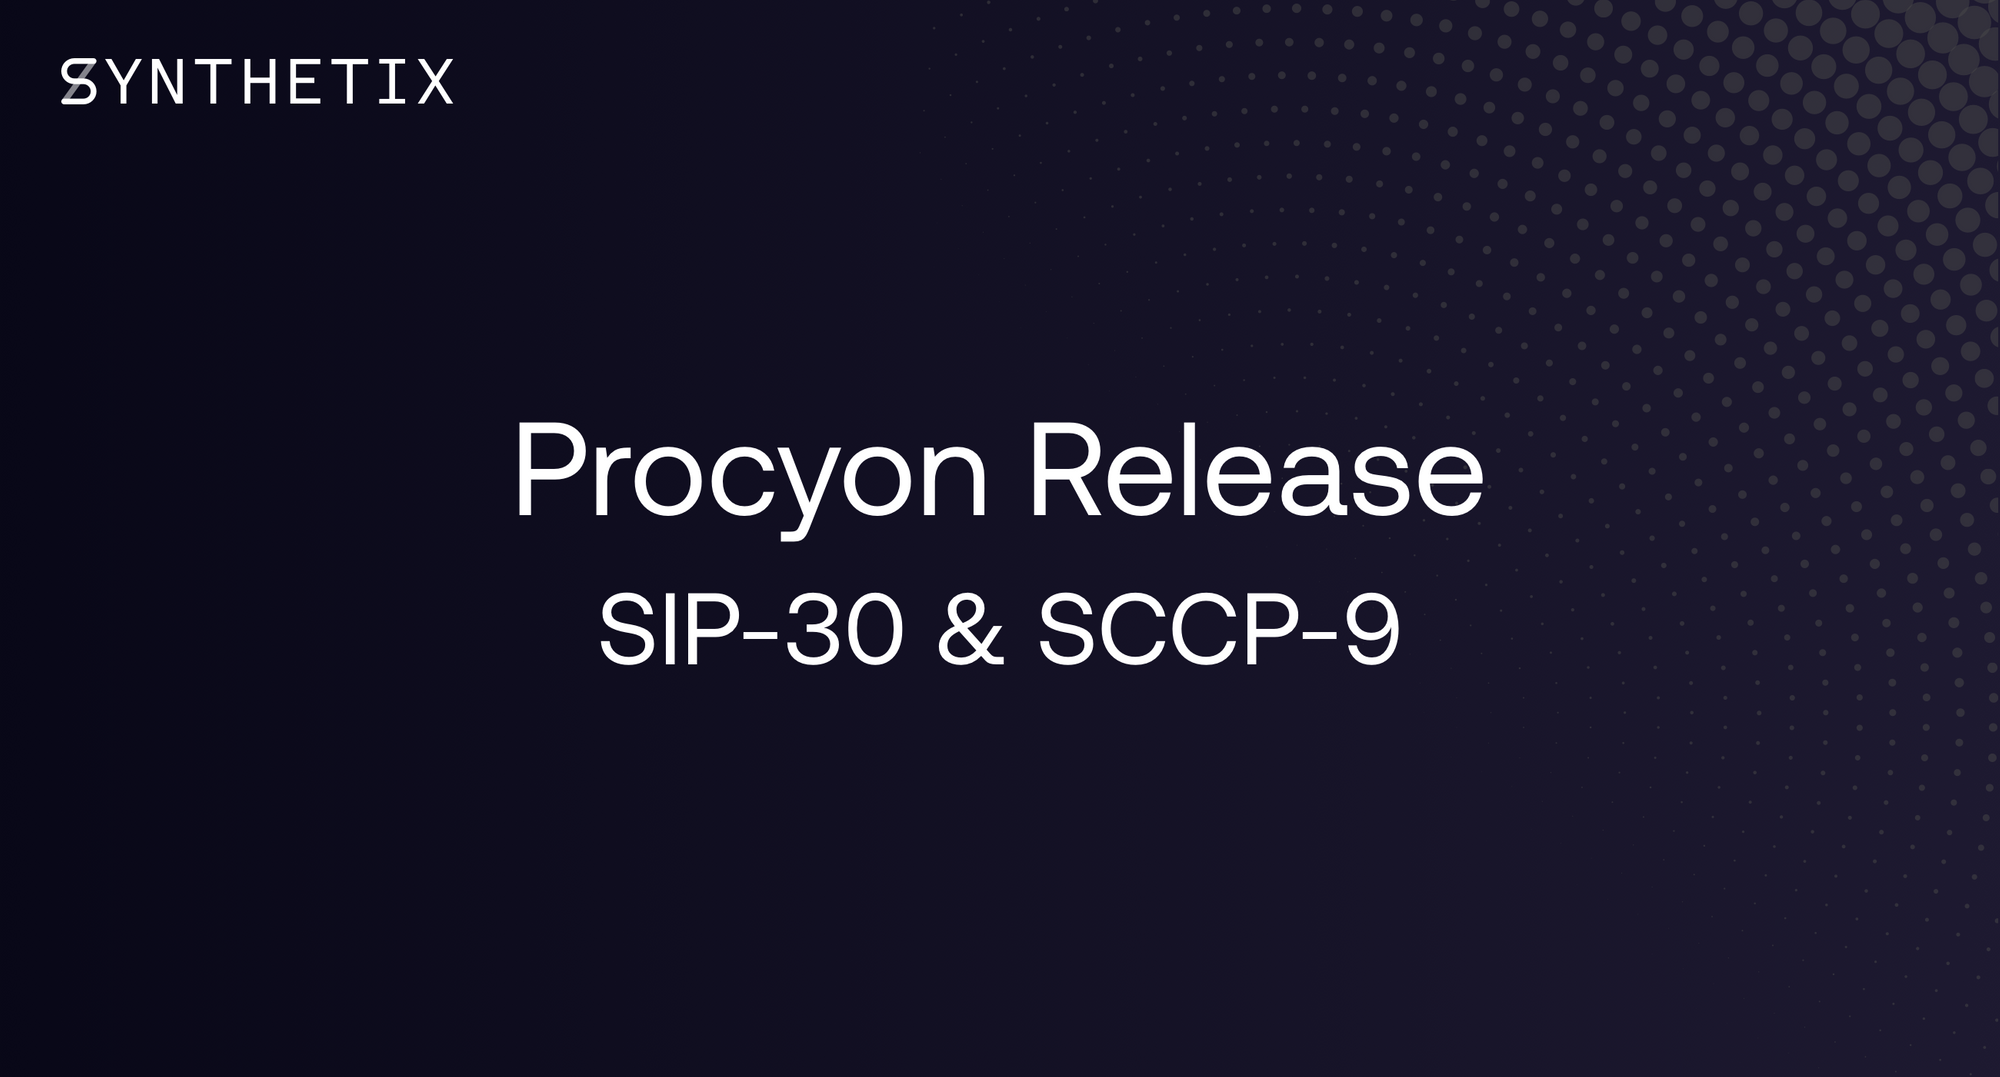 The Procyon Release